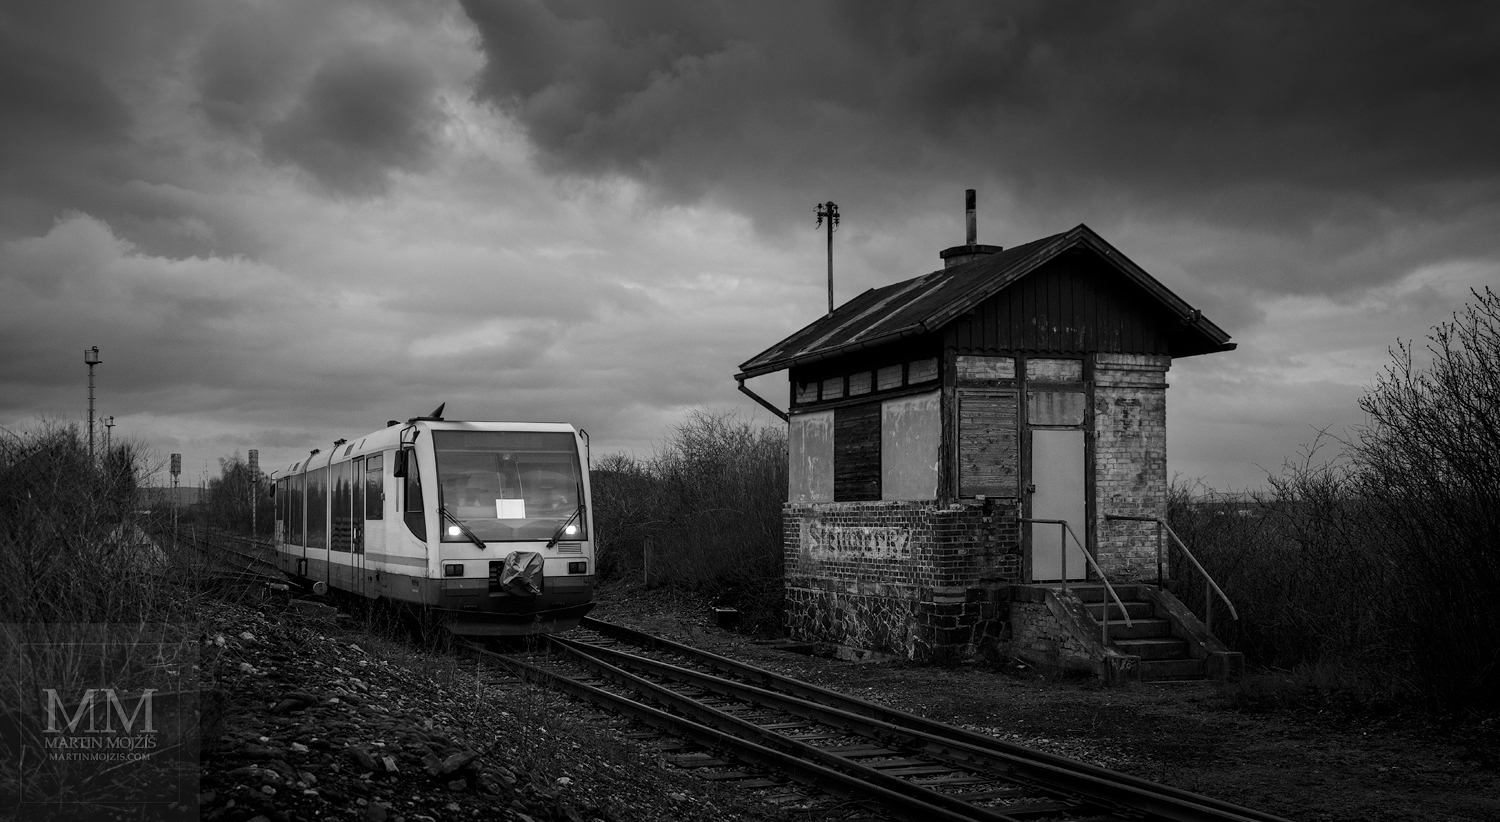 Fine Art large format black and white photograph of the engine train. Martin Mojzis.